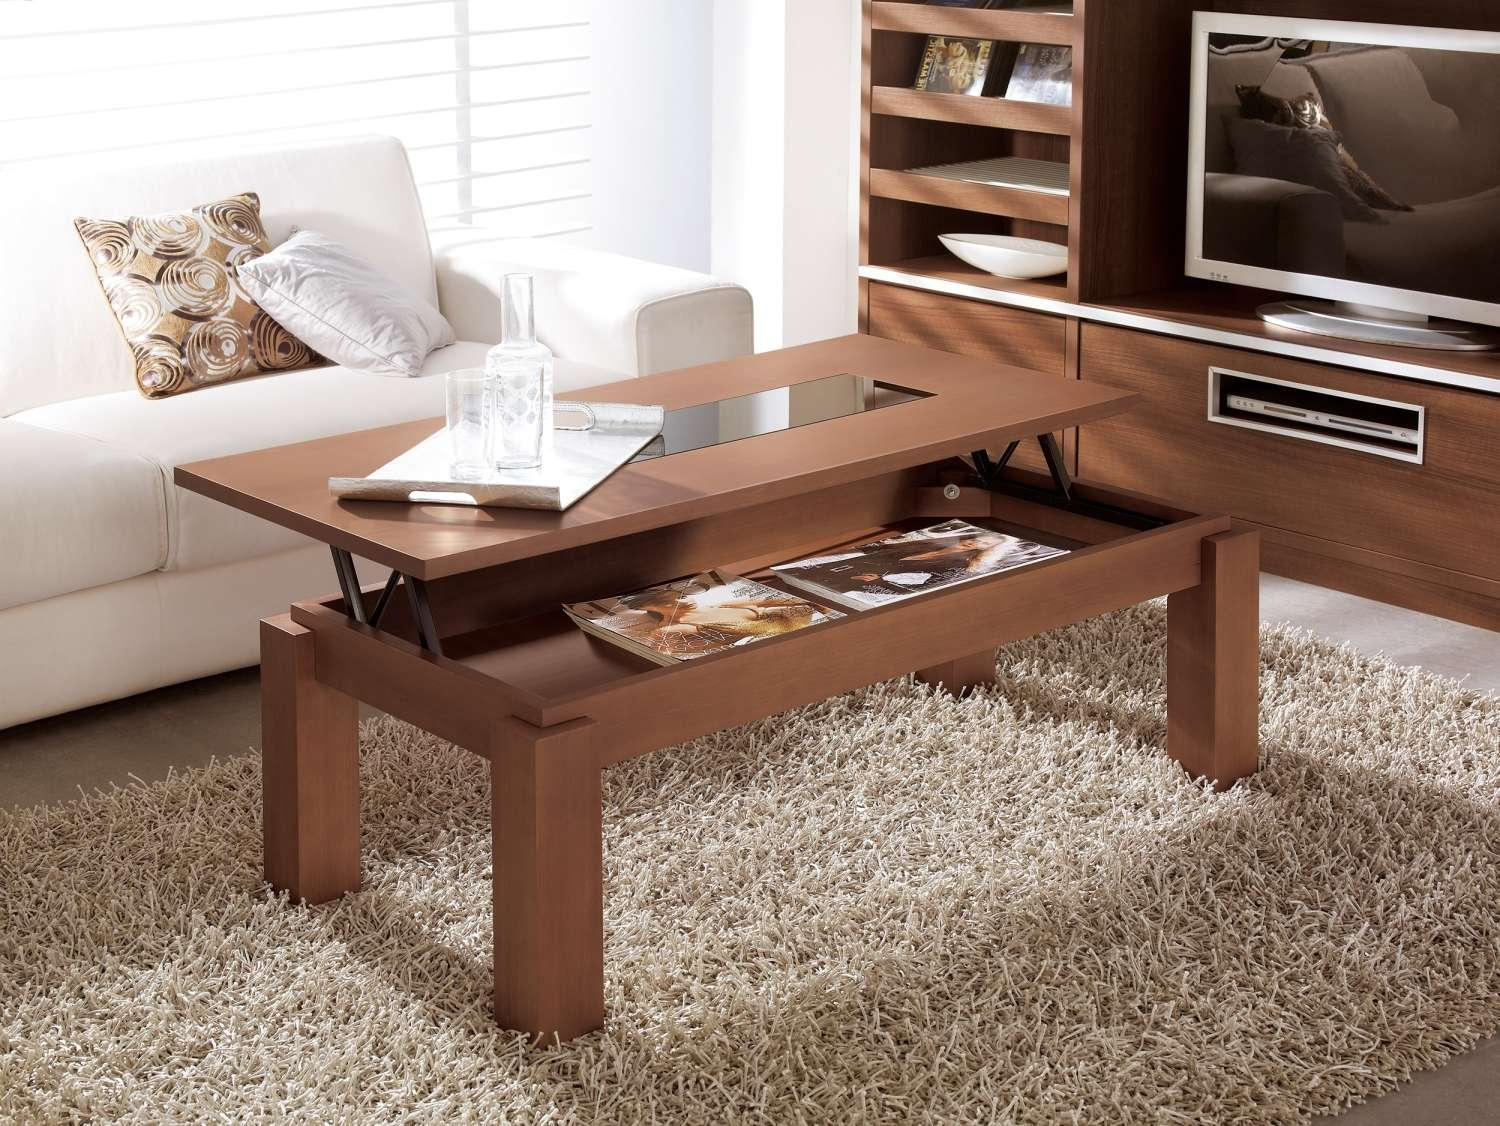 Coffee Tables : Simple Coffee Table Lift Up Wellington Glass Pop With Popular Raise Up Coffee Tables (View 2 of 20)